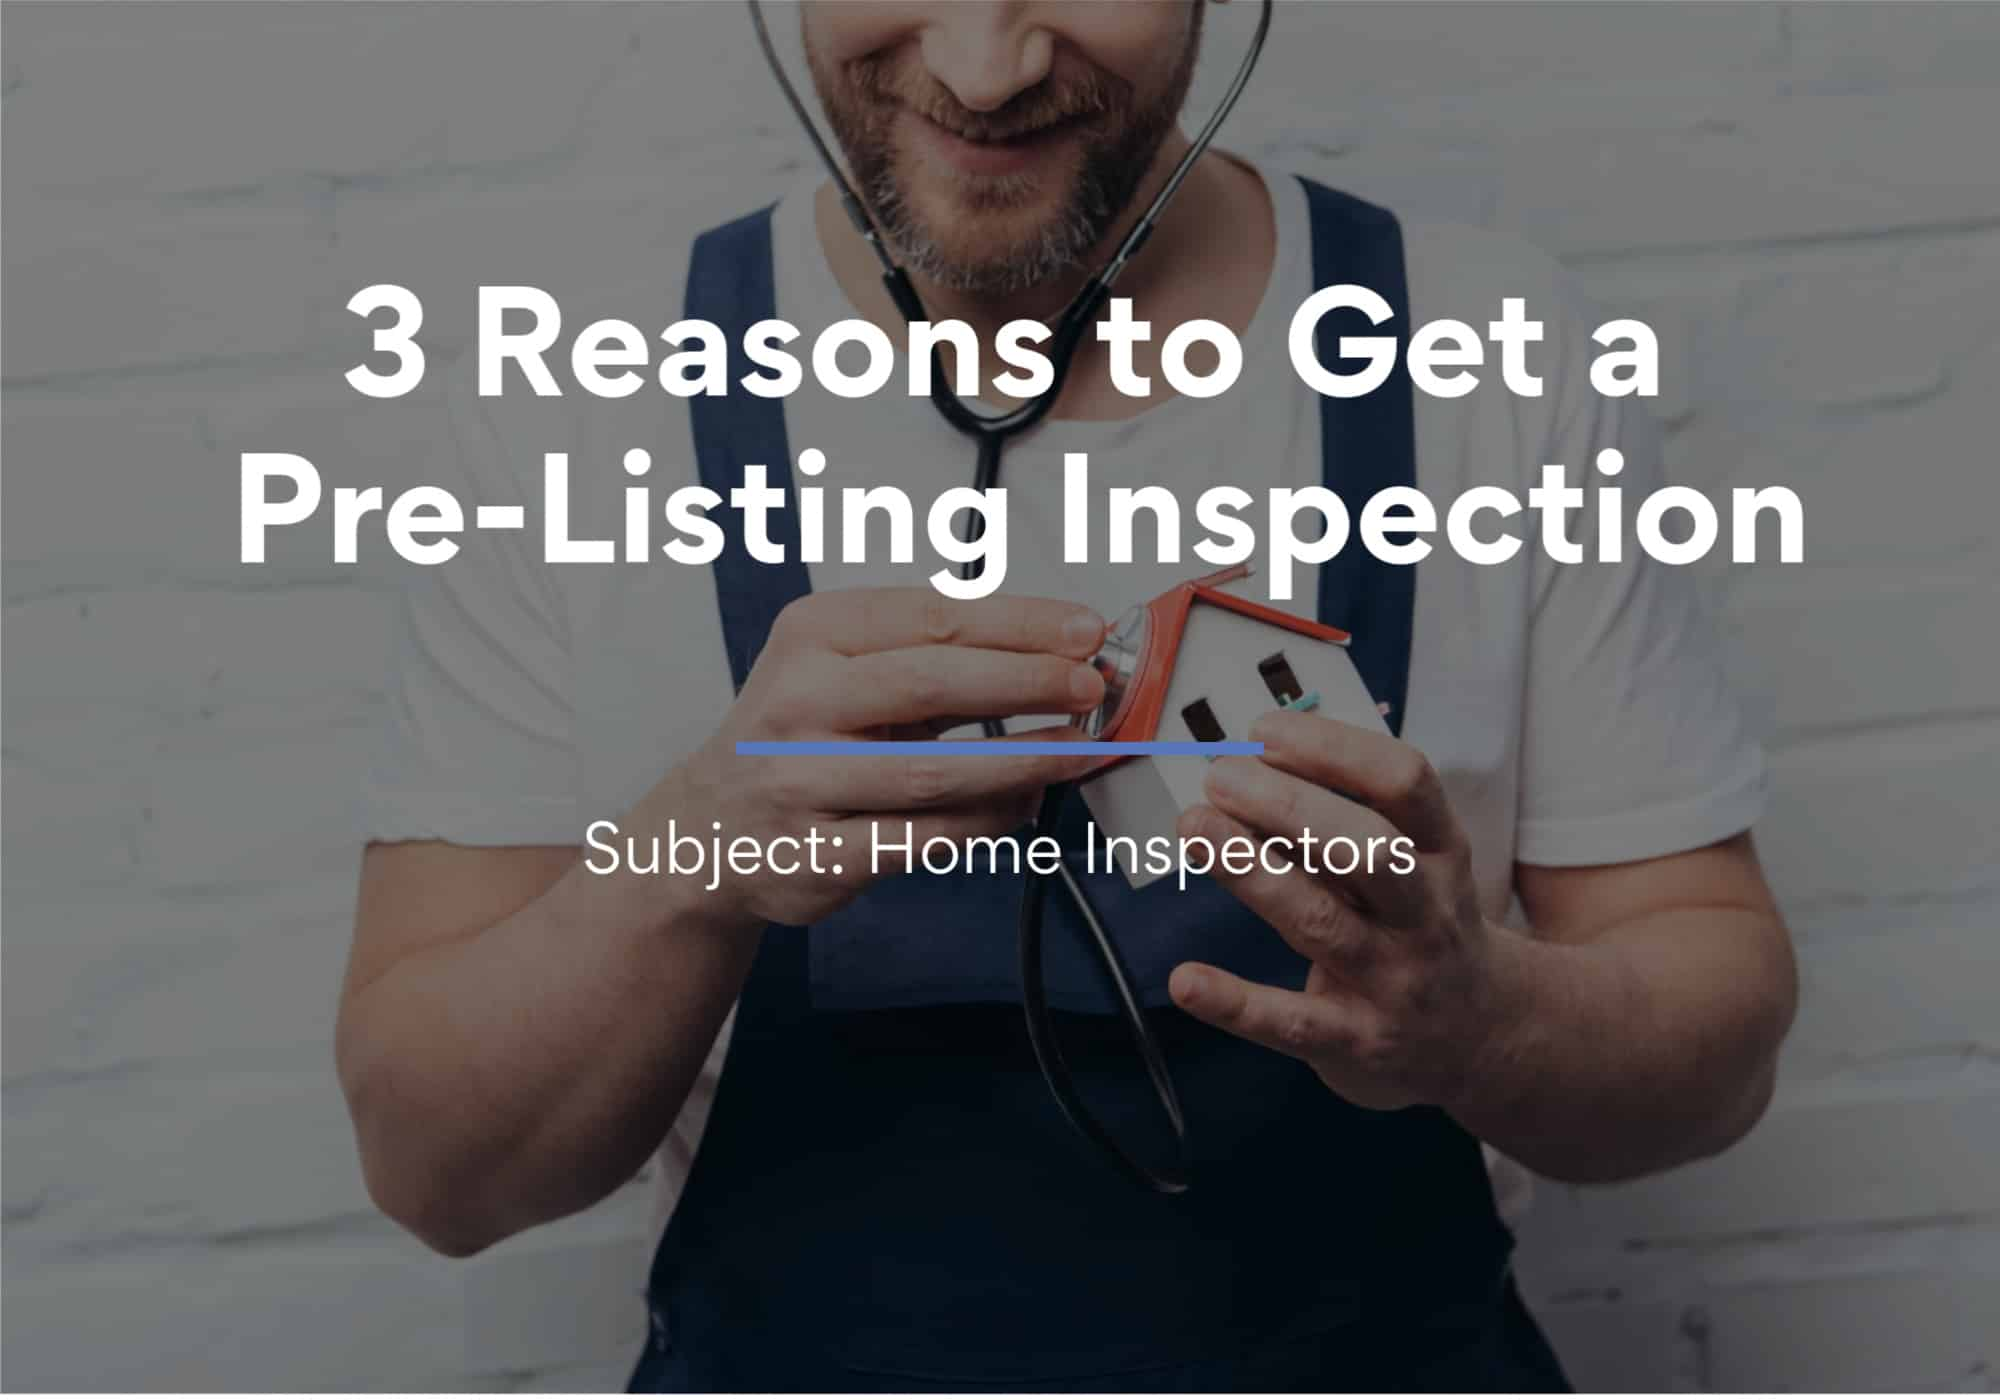 3 Reasons to Get a Pre-Listing Inspection